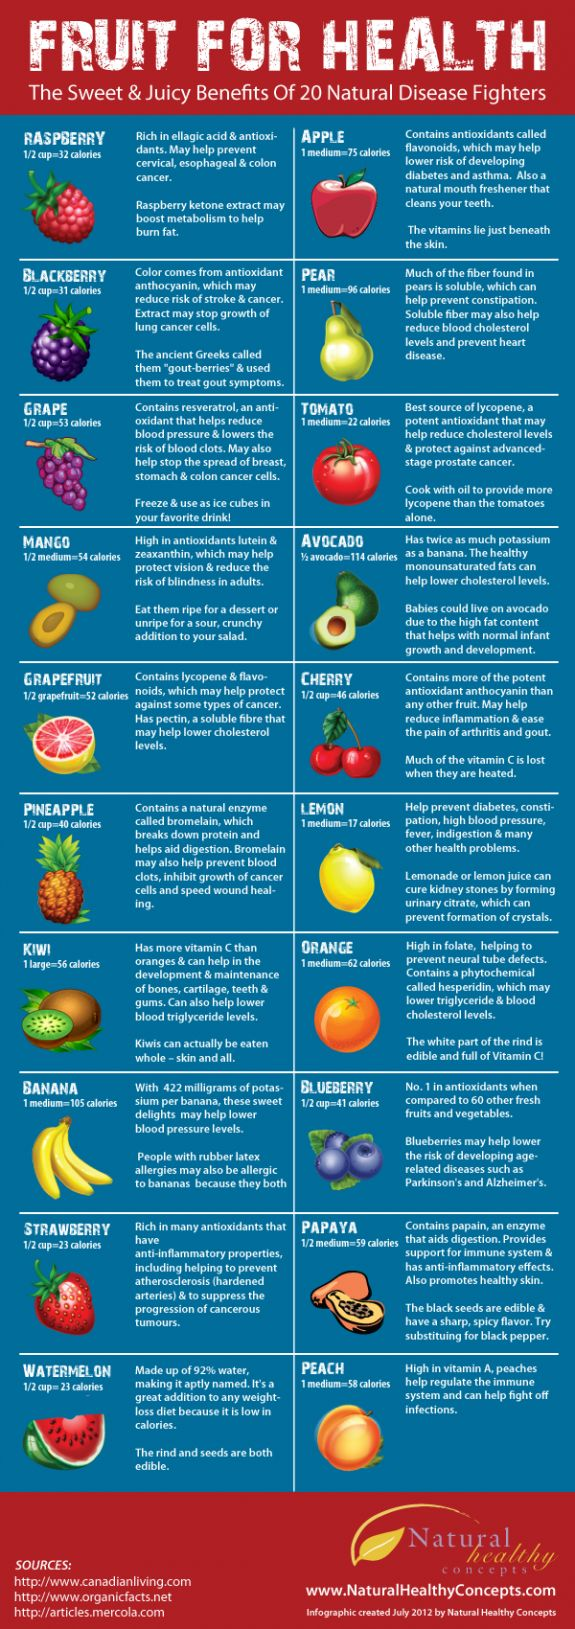 Fruit benefits and calories